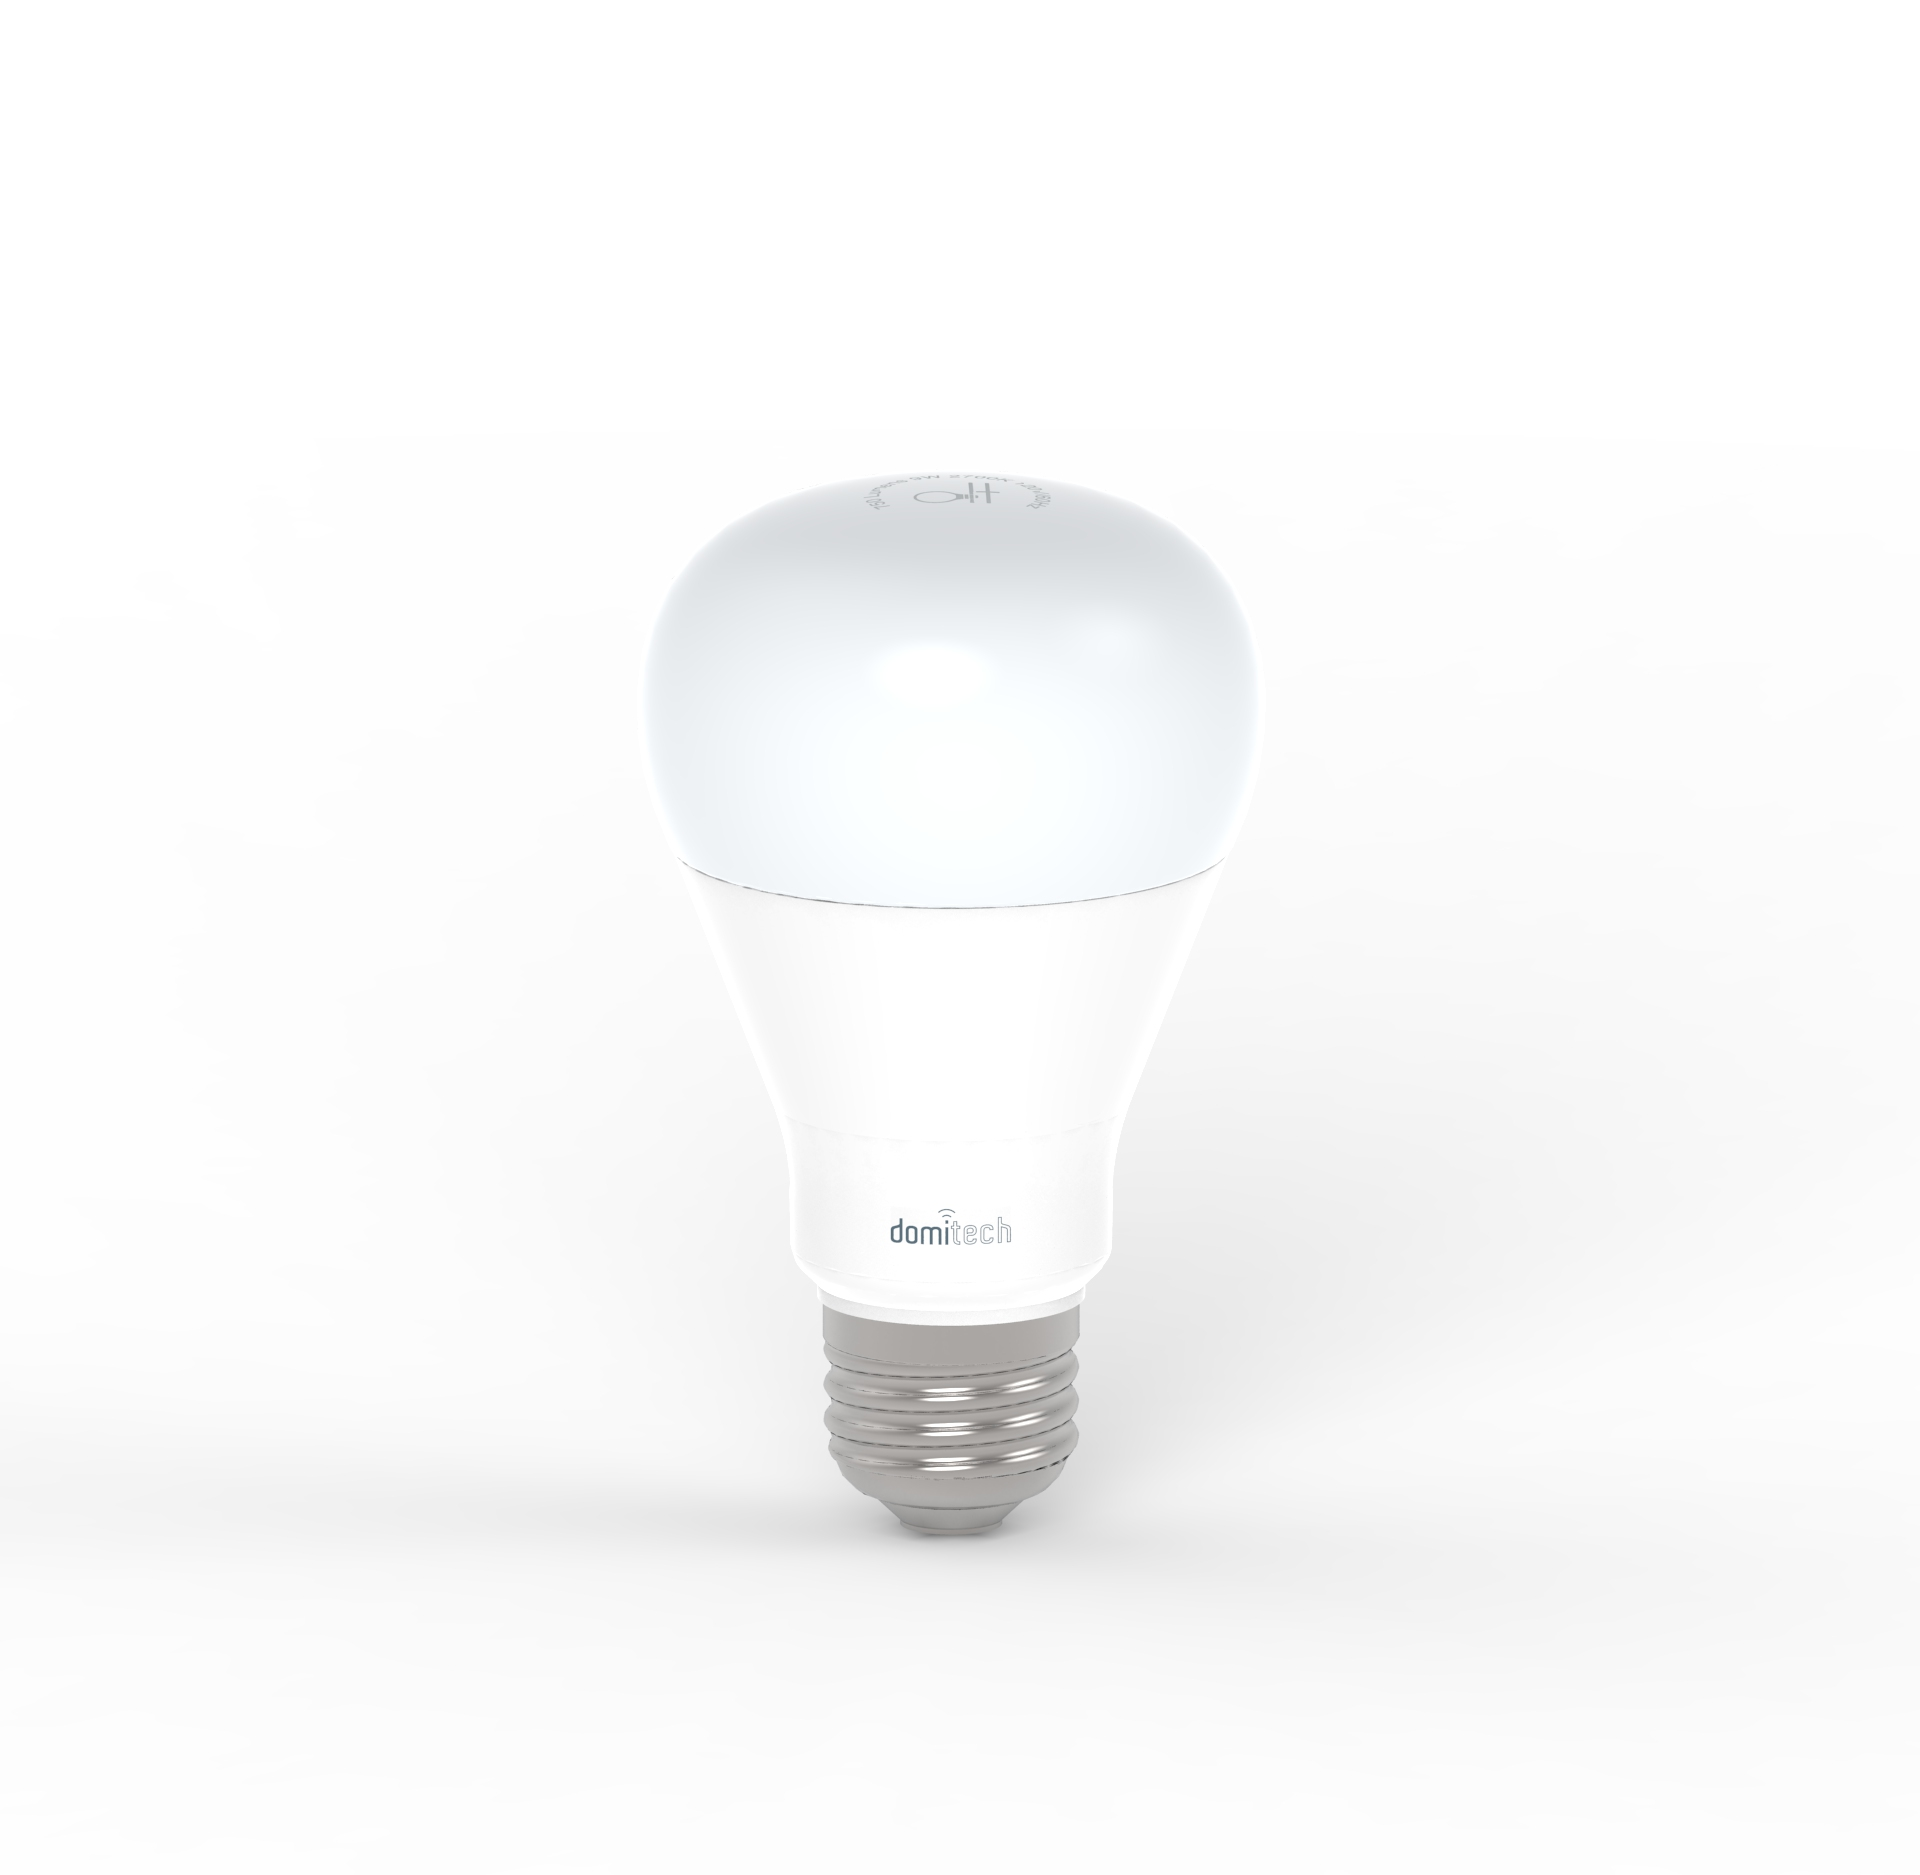 light x ww lighting can le bulbs bulb equivalent why smart warm incandescent led white ever